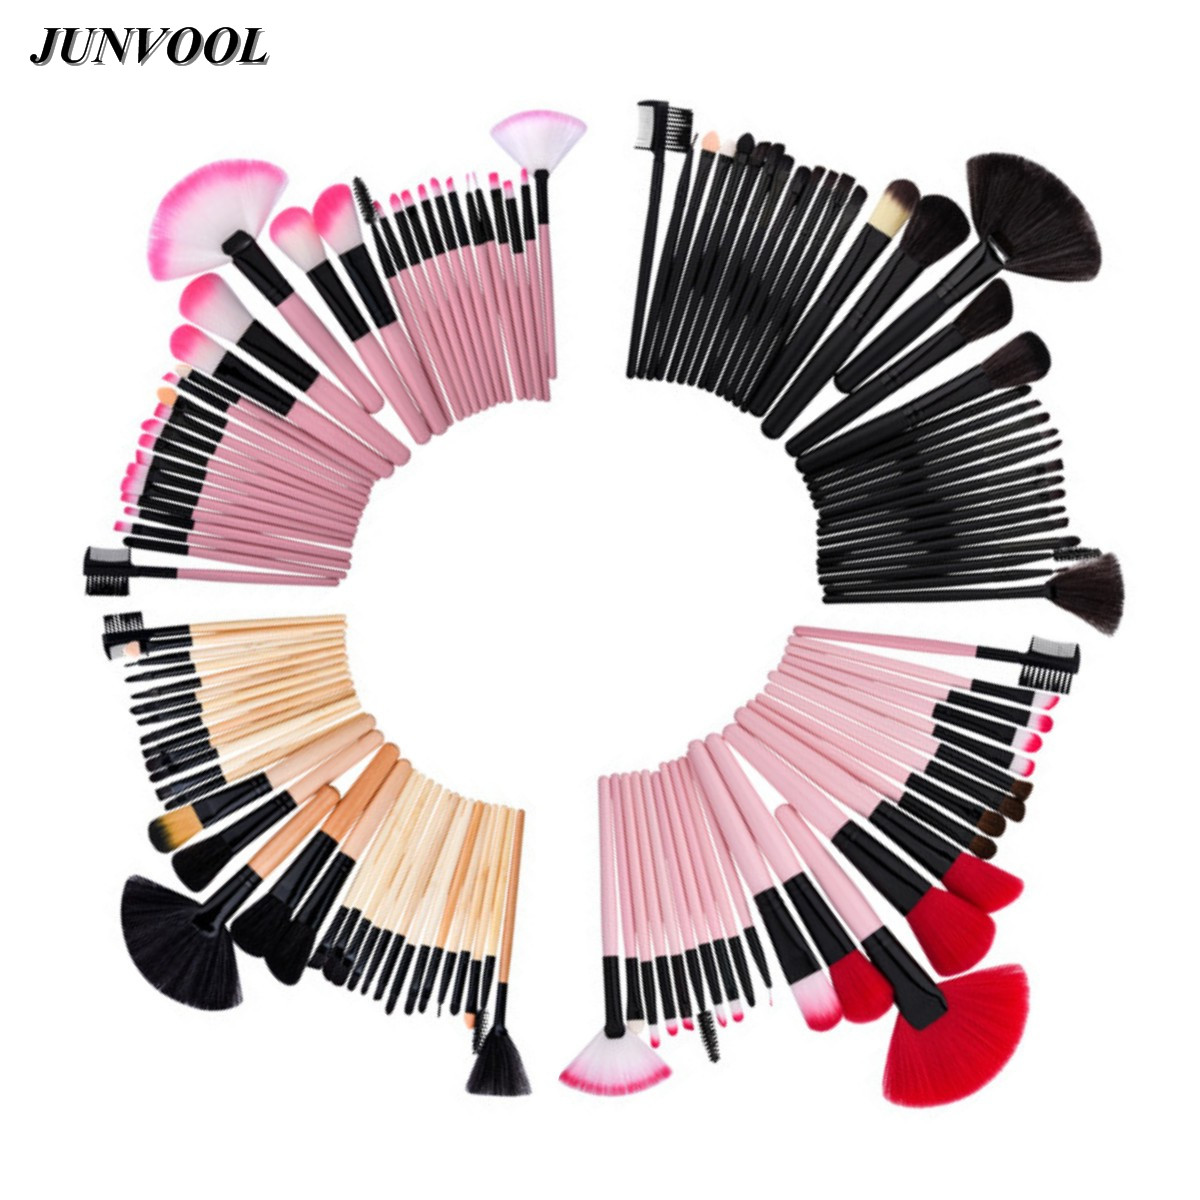 Pink Cosmetic Fan Brush Soft Synthetic Hair Make Up Tools Kit Cosmetics Makeup Brushes Black Sets Ccessories Beauty Essentials 24 pcs soft synthetic hair make up tools kit cosmetic beauty makeup brush sets foundation brushes with pink love heart case